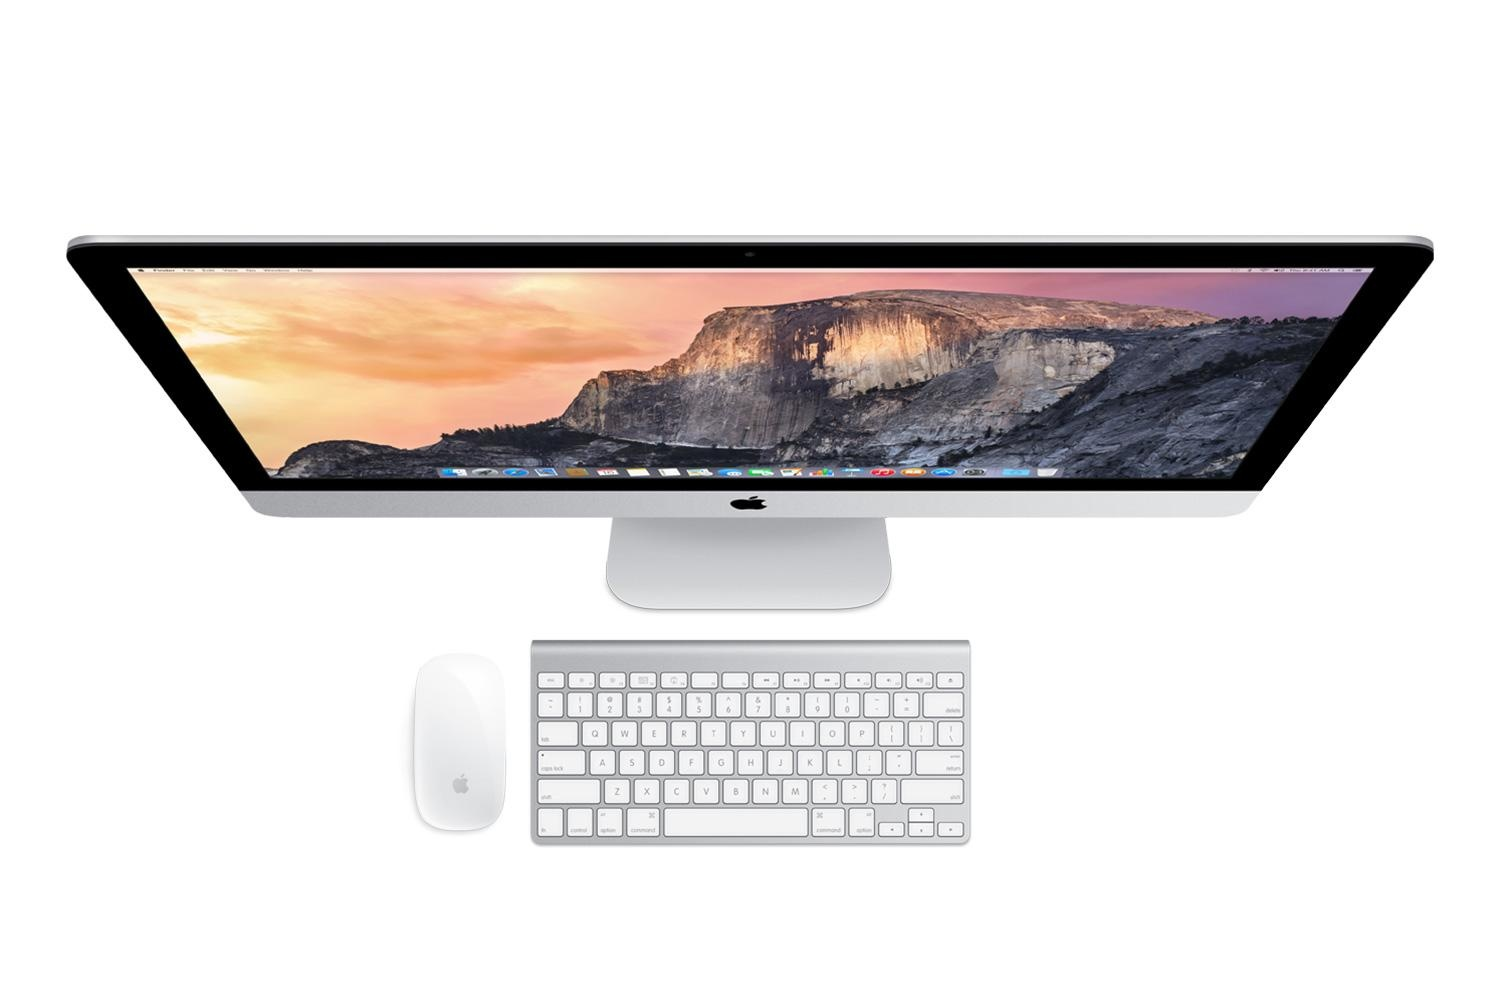 27-inch-imac-with-retina-5k-display-included_hardware-2-1500x1000 Apple iMac with Retina 5K display review